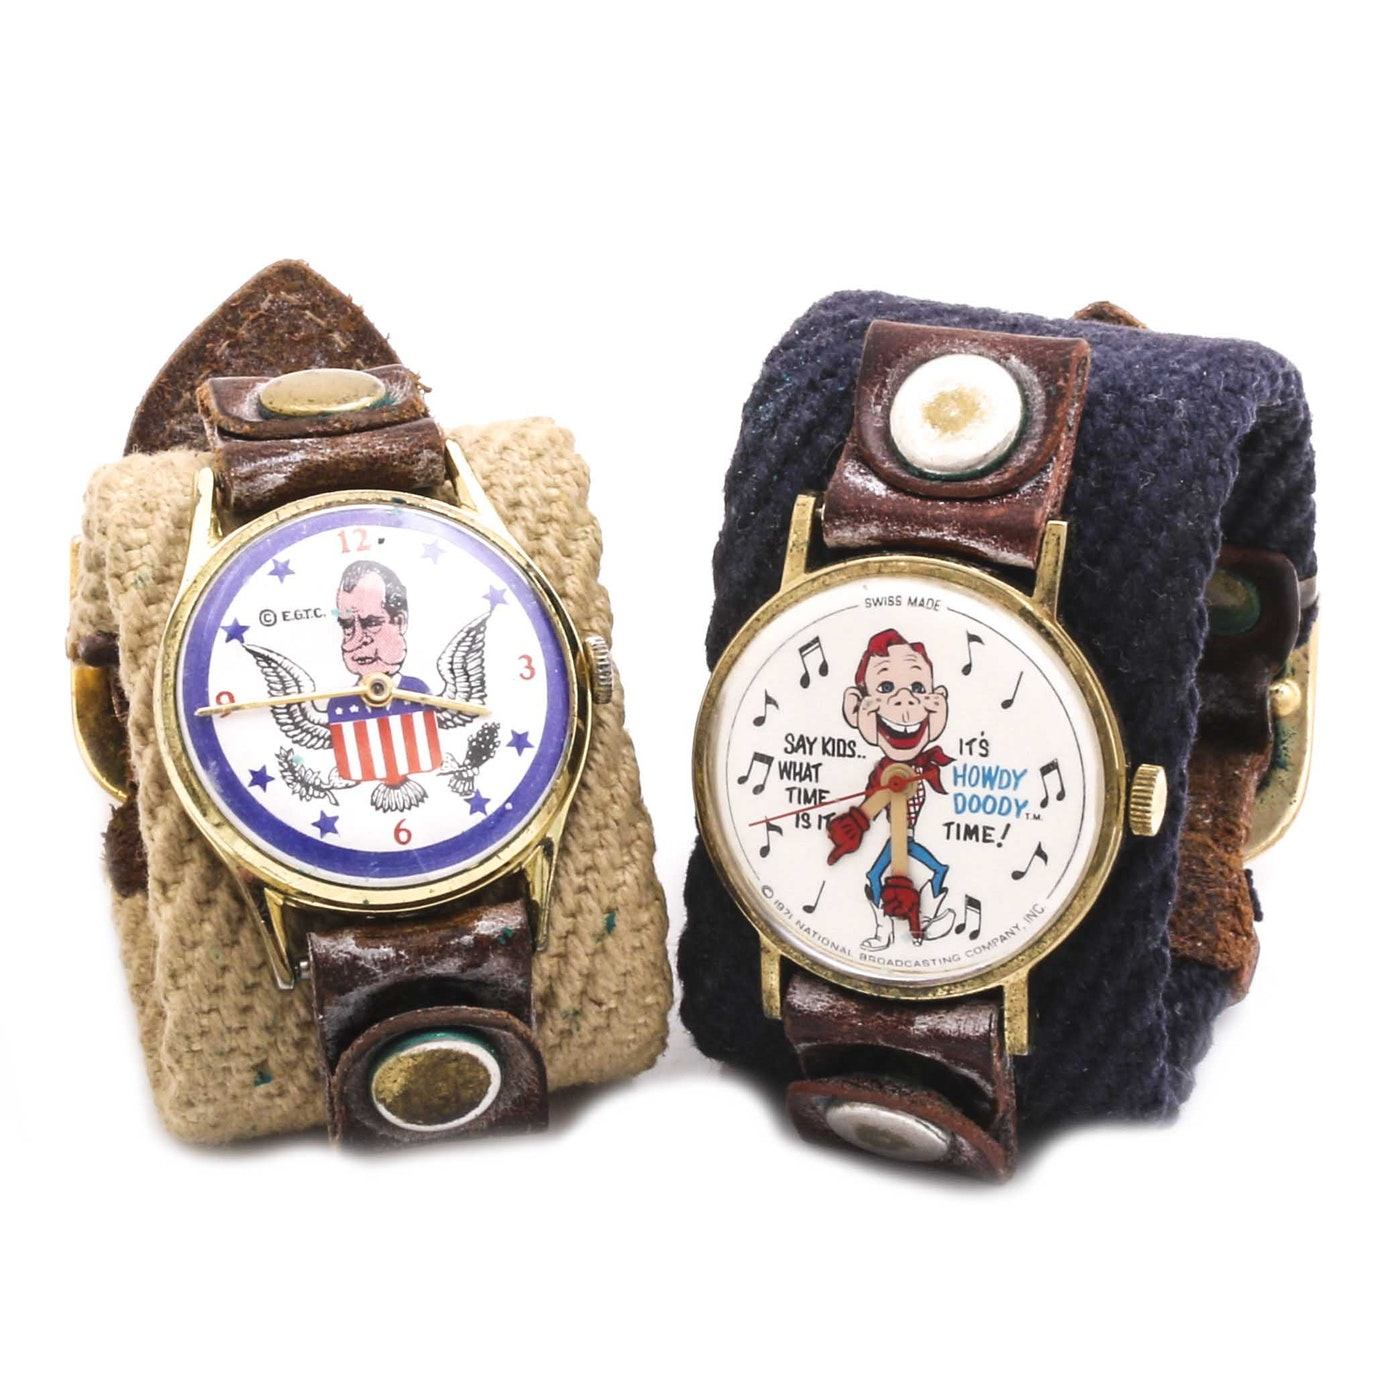 Richard Nixon Watchmen: Richard Nixon And Howdy Doody Character Watches